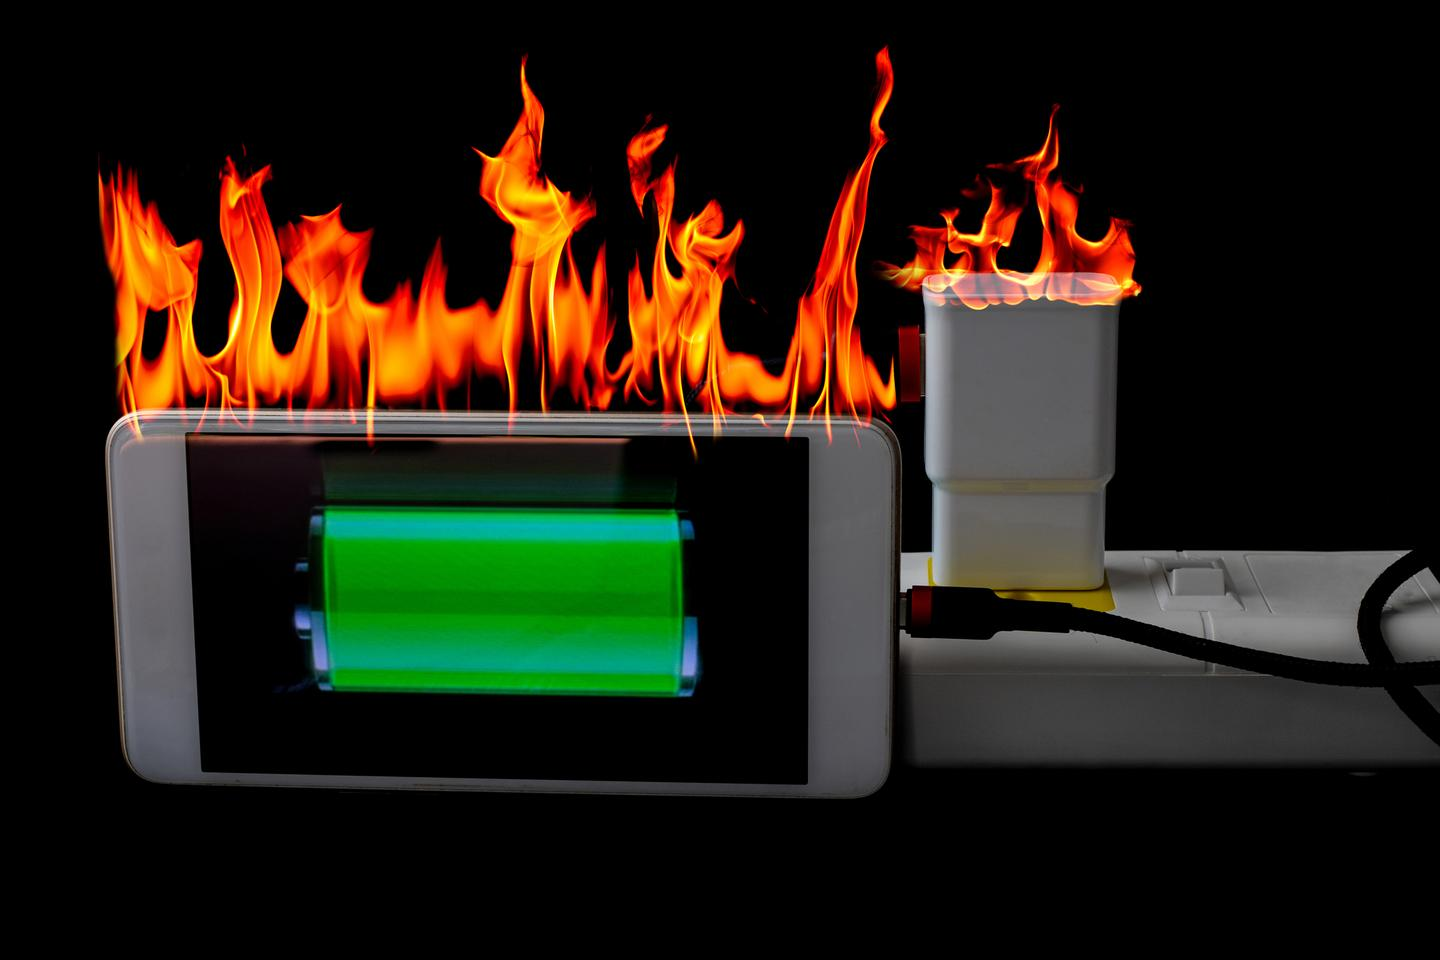 A layer of graphene foam could prevent electronics from overheating or freezing